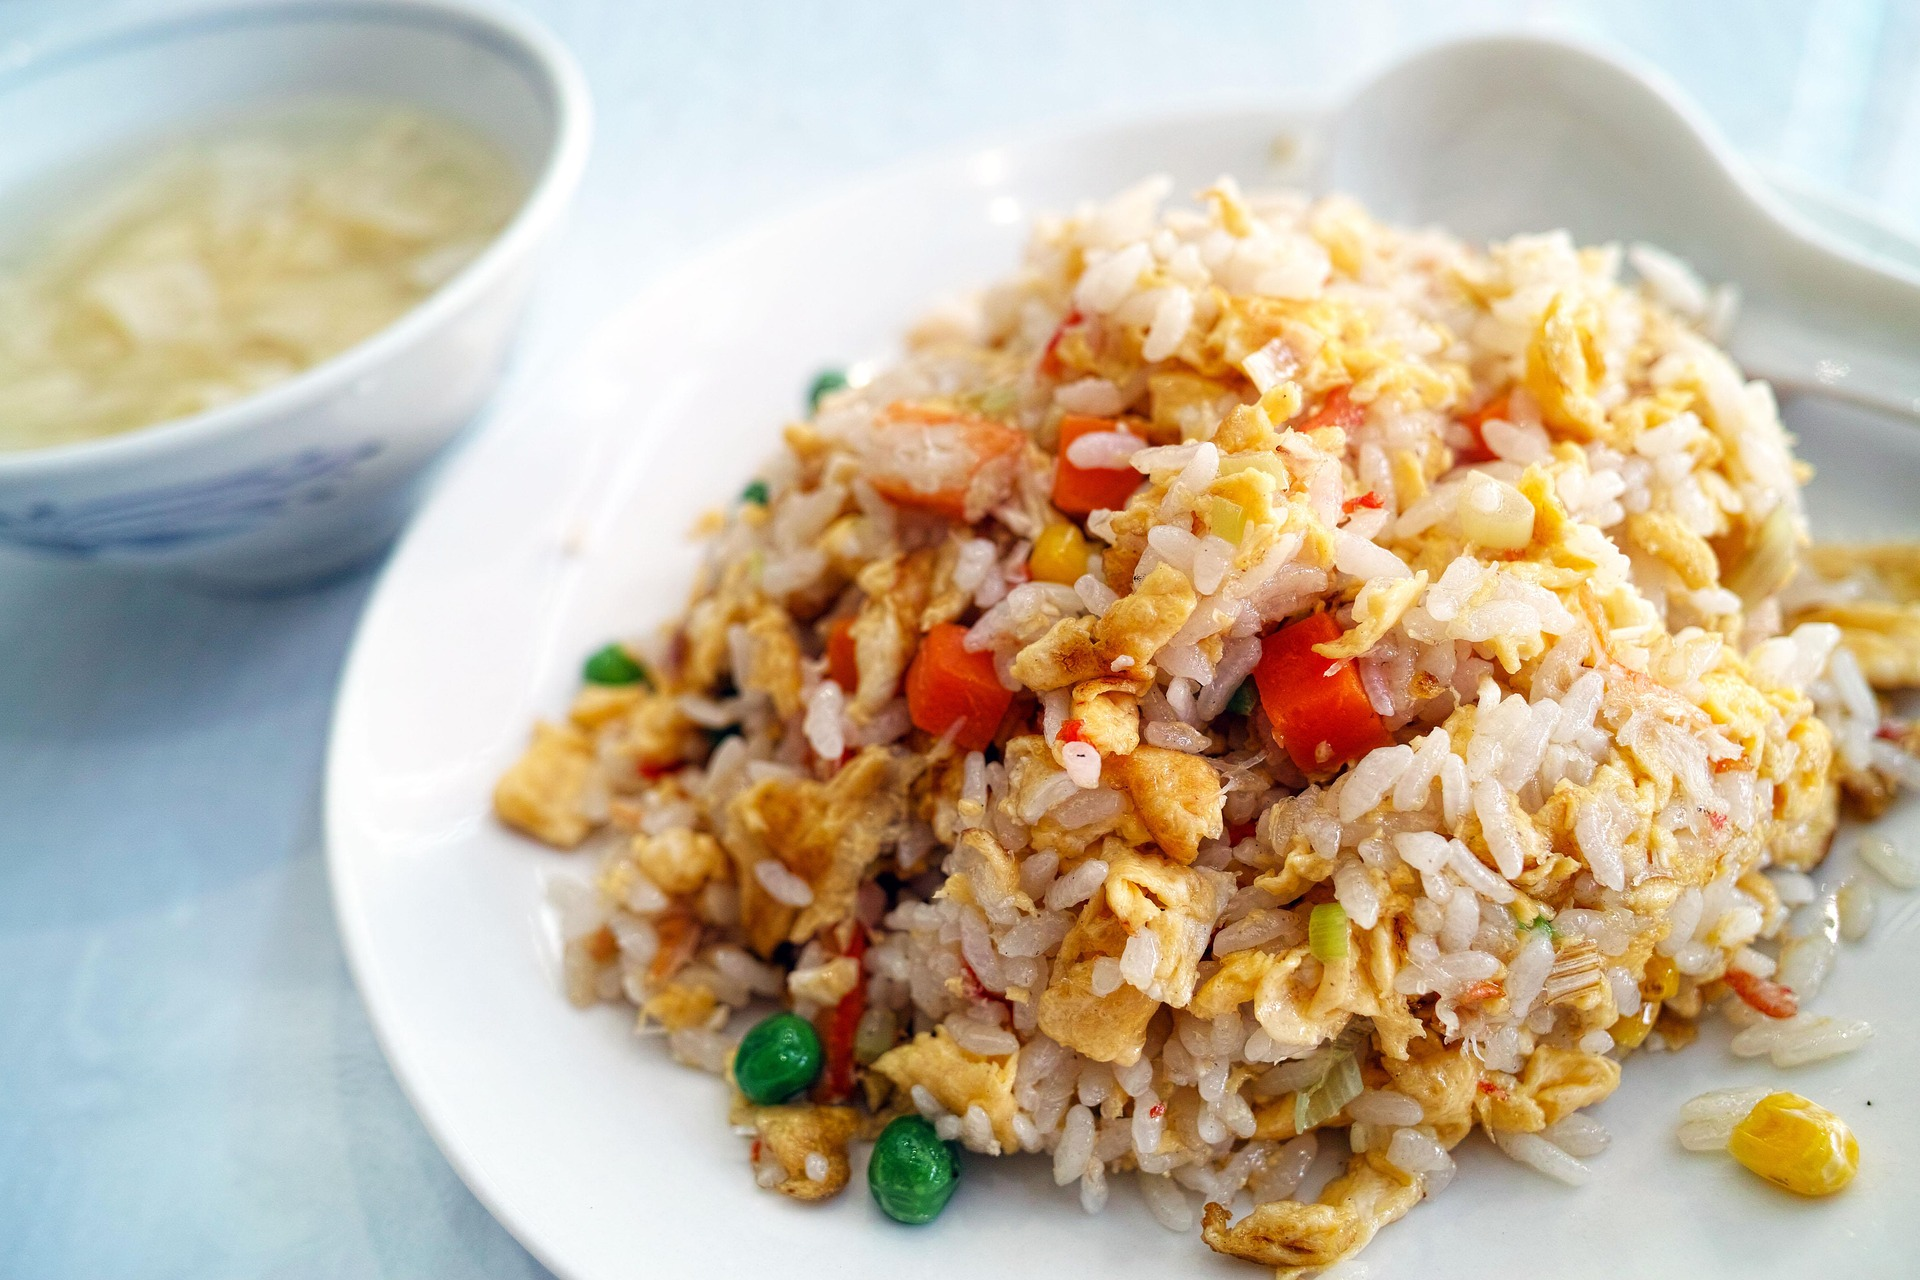 Plate of fried rice.